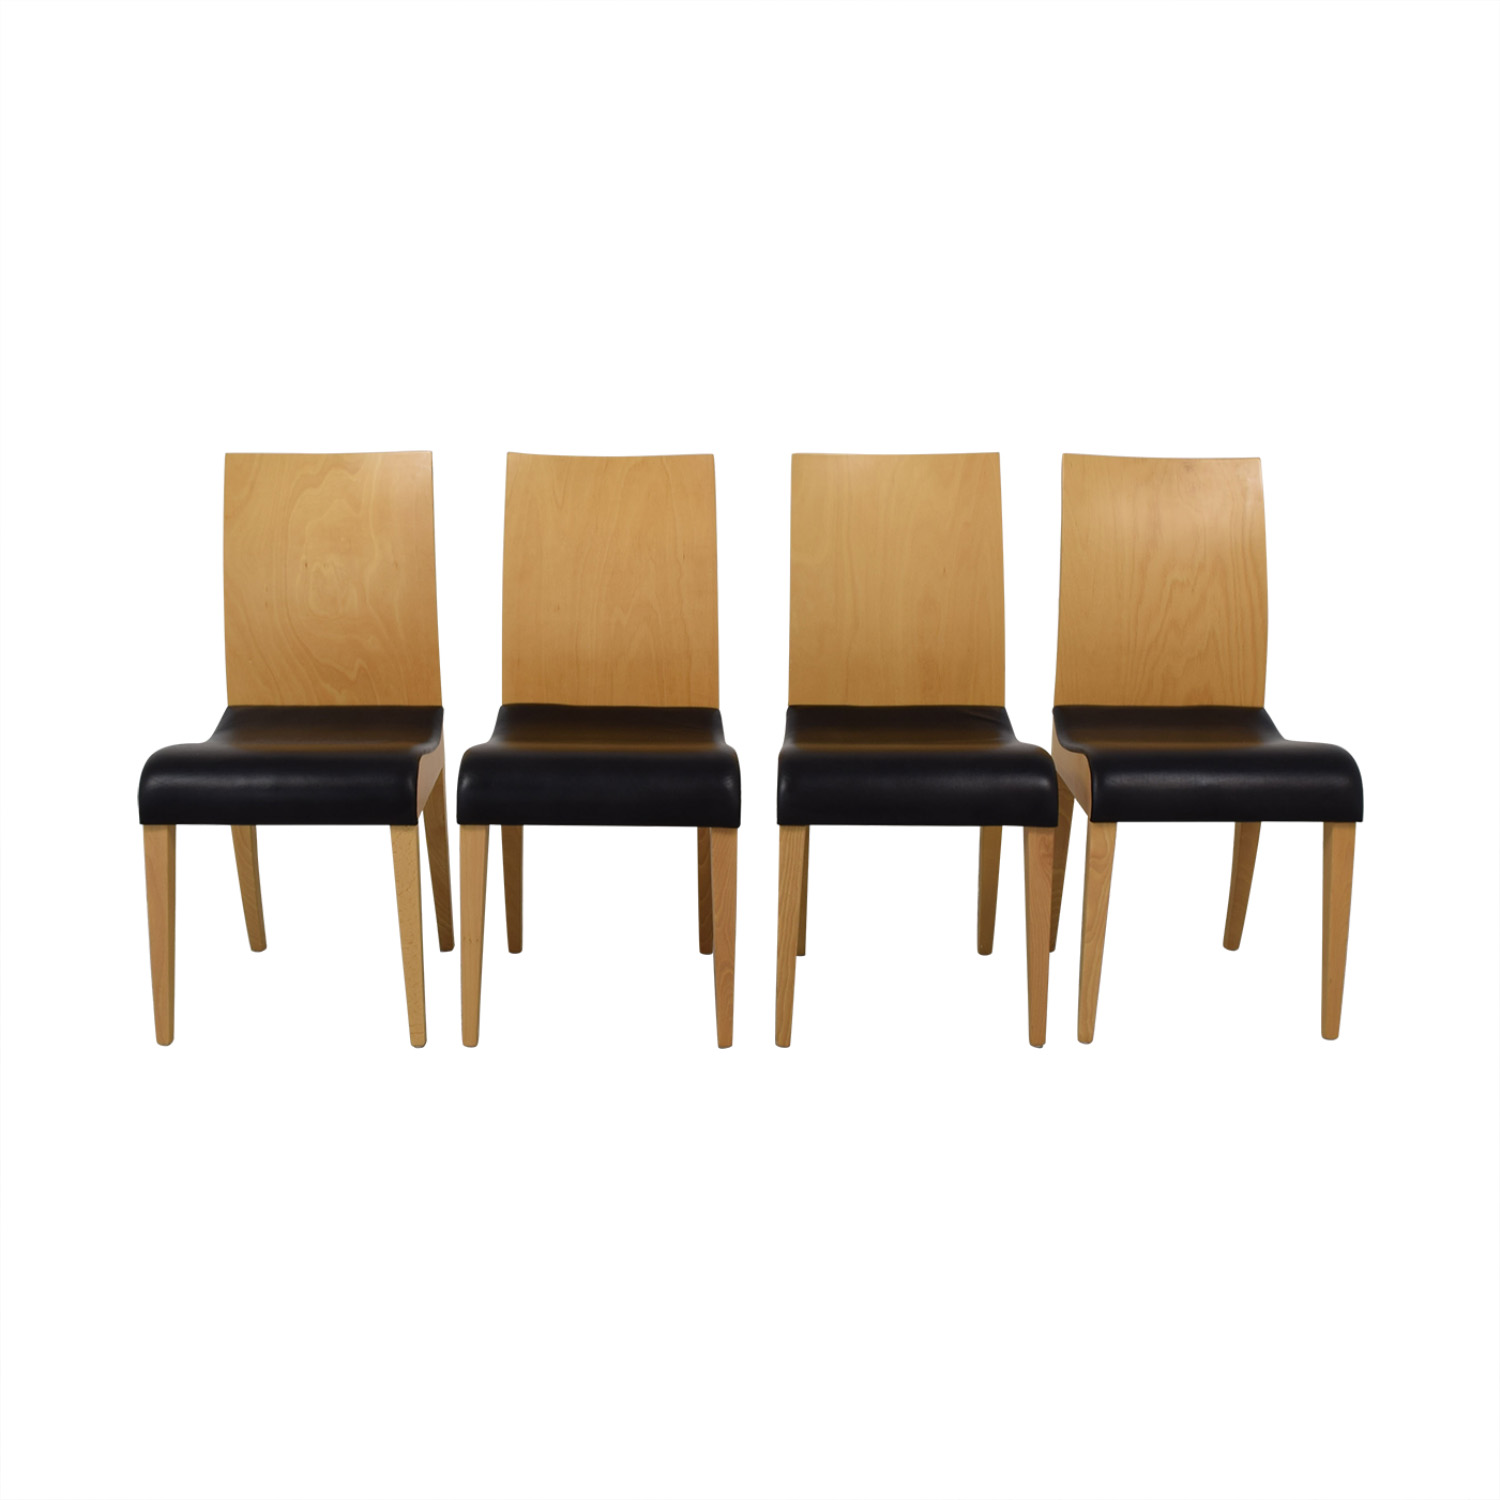 Pace Collection Pace Collection BROS/S Dining Chairs dimensions